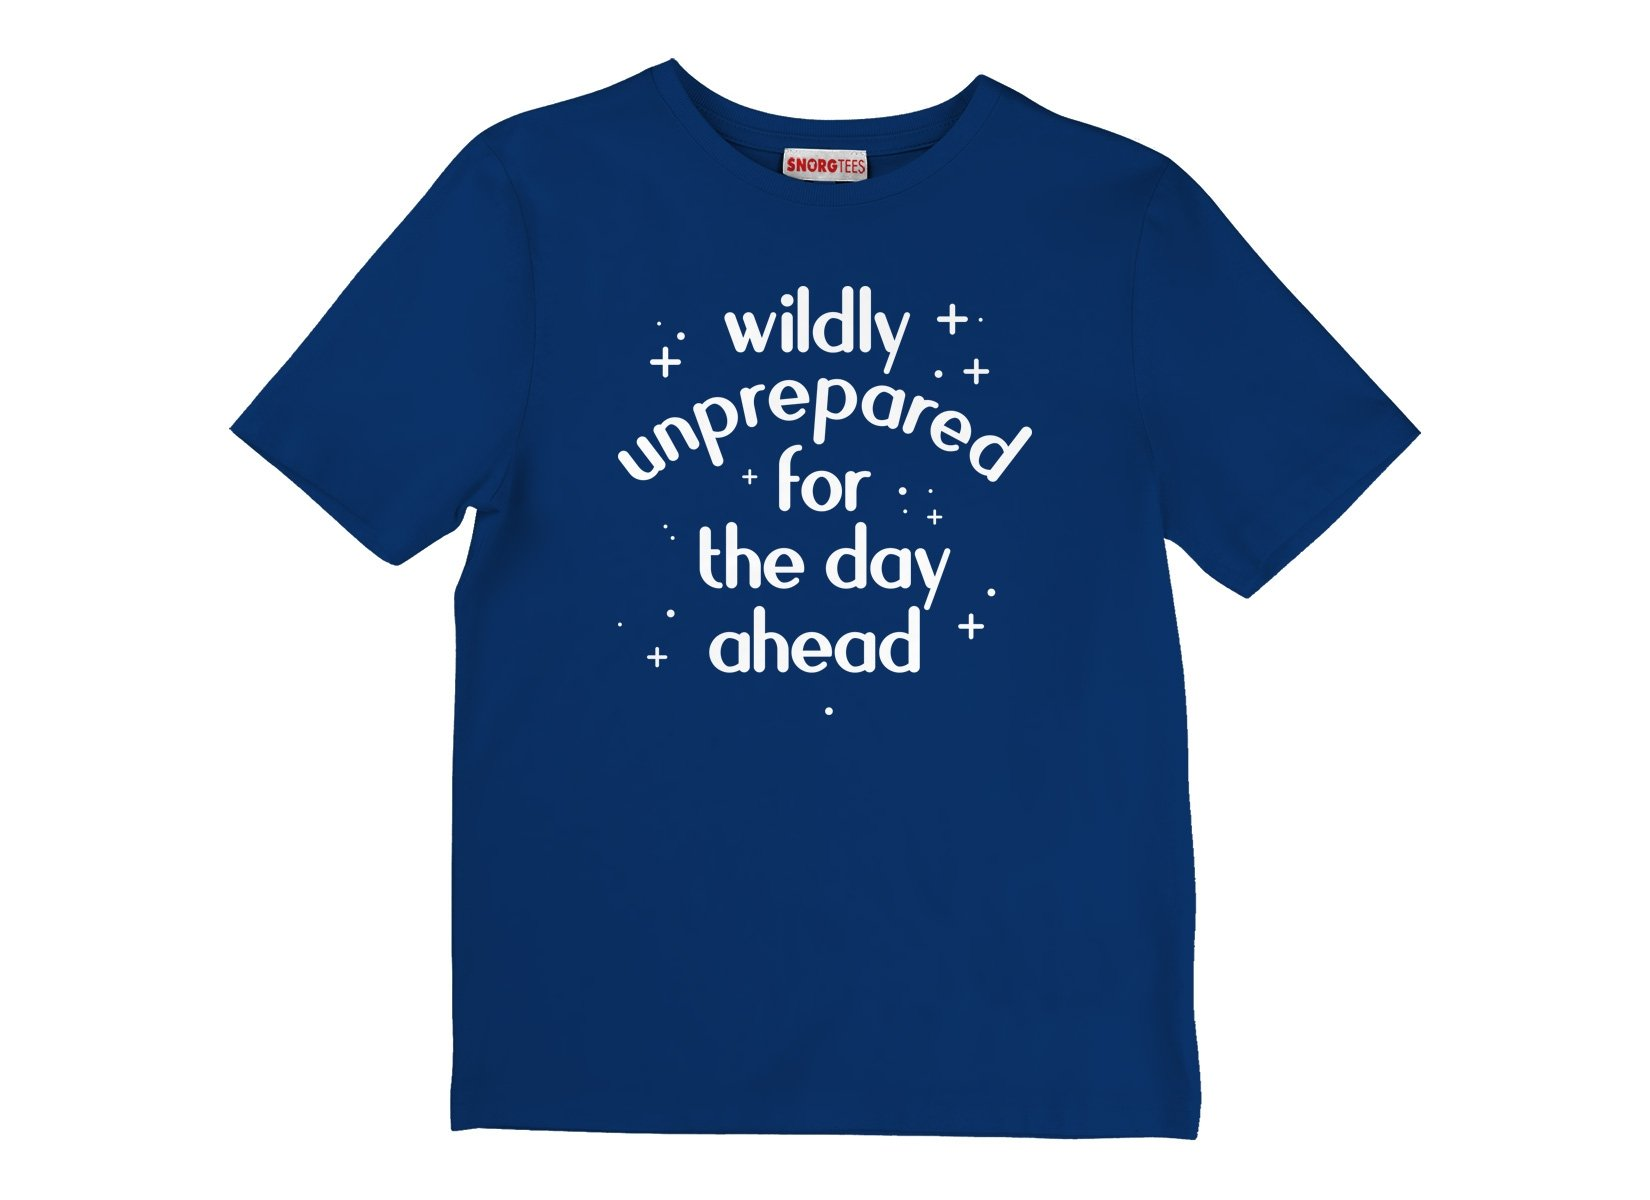 Wildly Unprepared For The Day Ahead on Kids T-Shirt